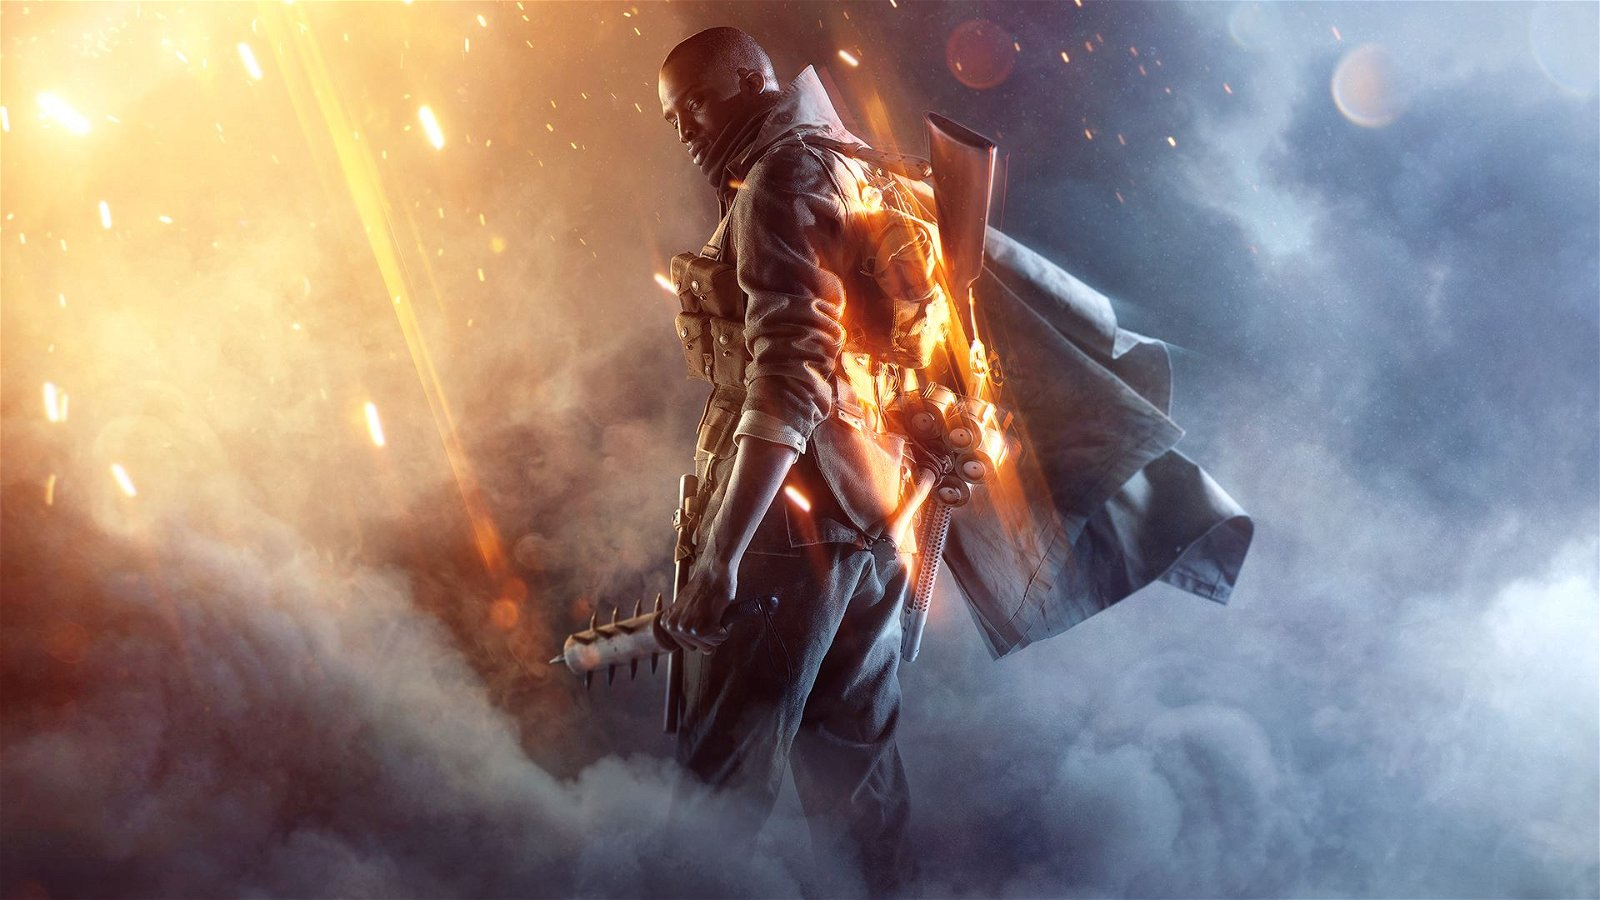 Will Battlefield 1 Live Up to the Hype? We Couldn't Decide 11